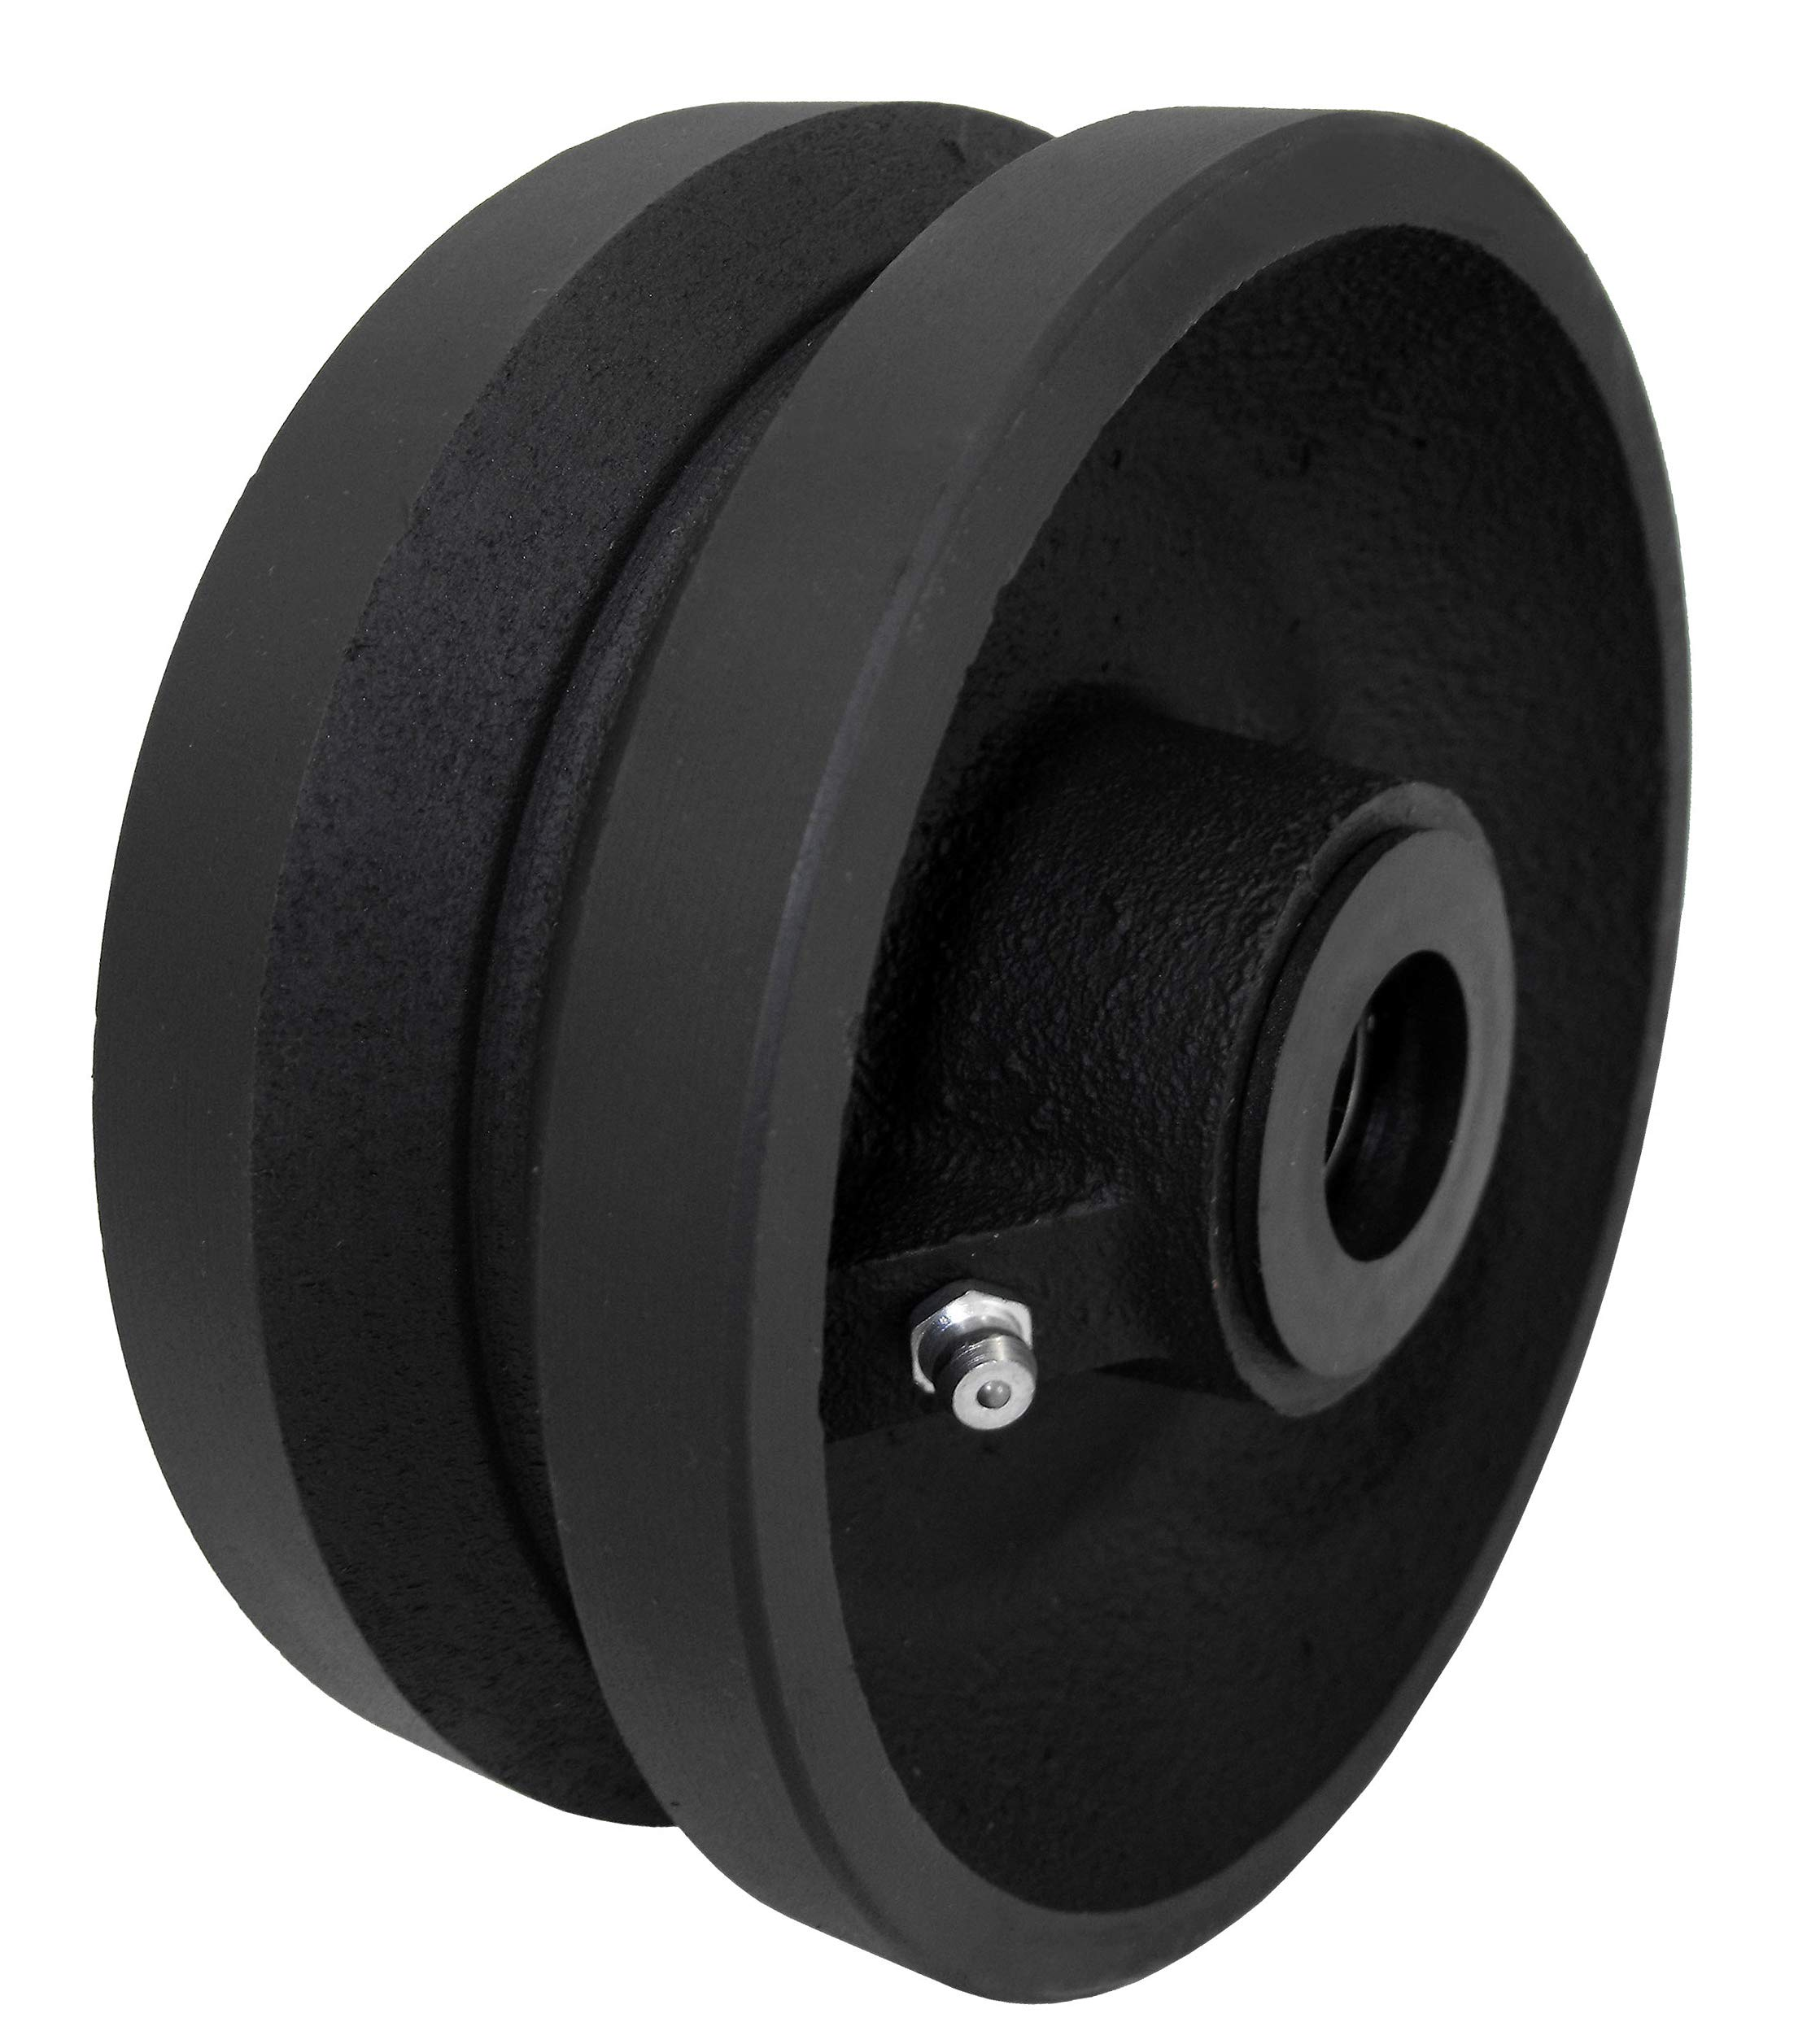 CasterHQ 4'' X 1-1/2'' V Groove Wheel 350 LBS Capacity Replacement Wheel Commercial/Industrial Application Includes 3/4'' Roller Bearing with 1/2'' ID Spanner Bushing Bore 1/2''